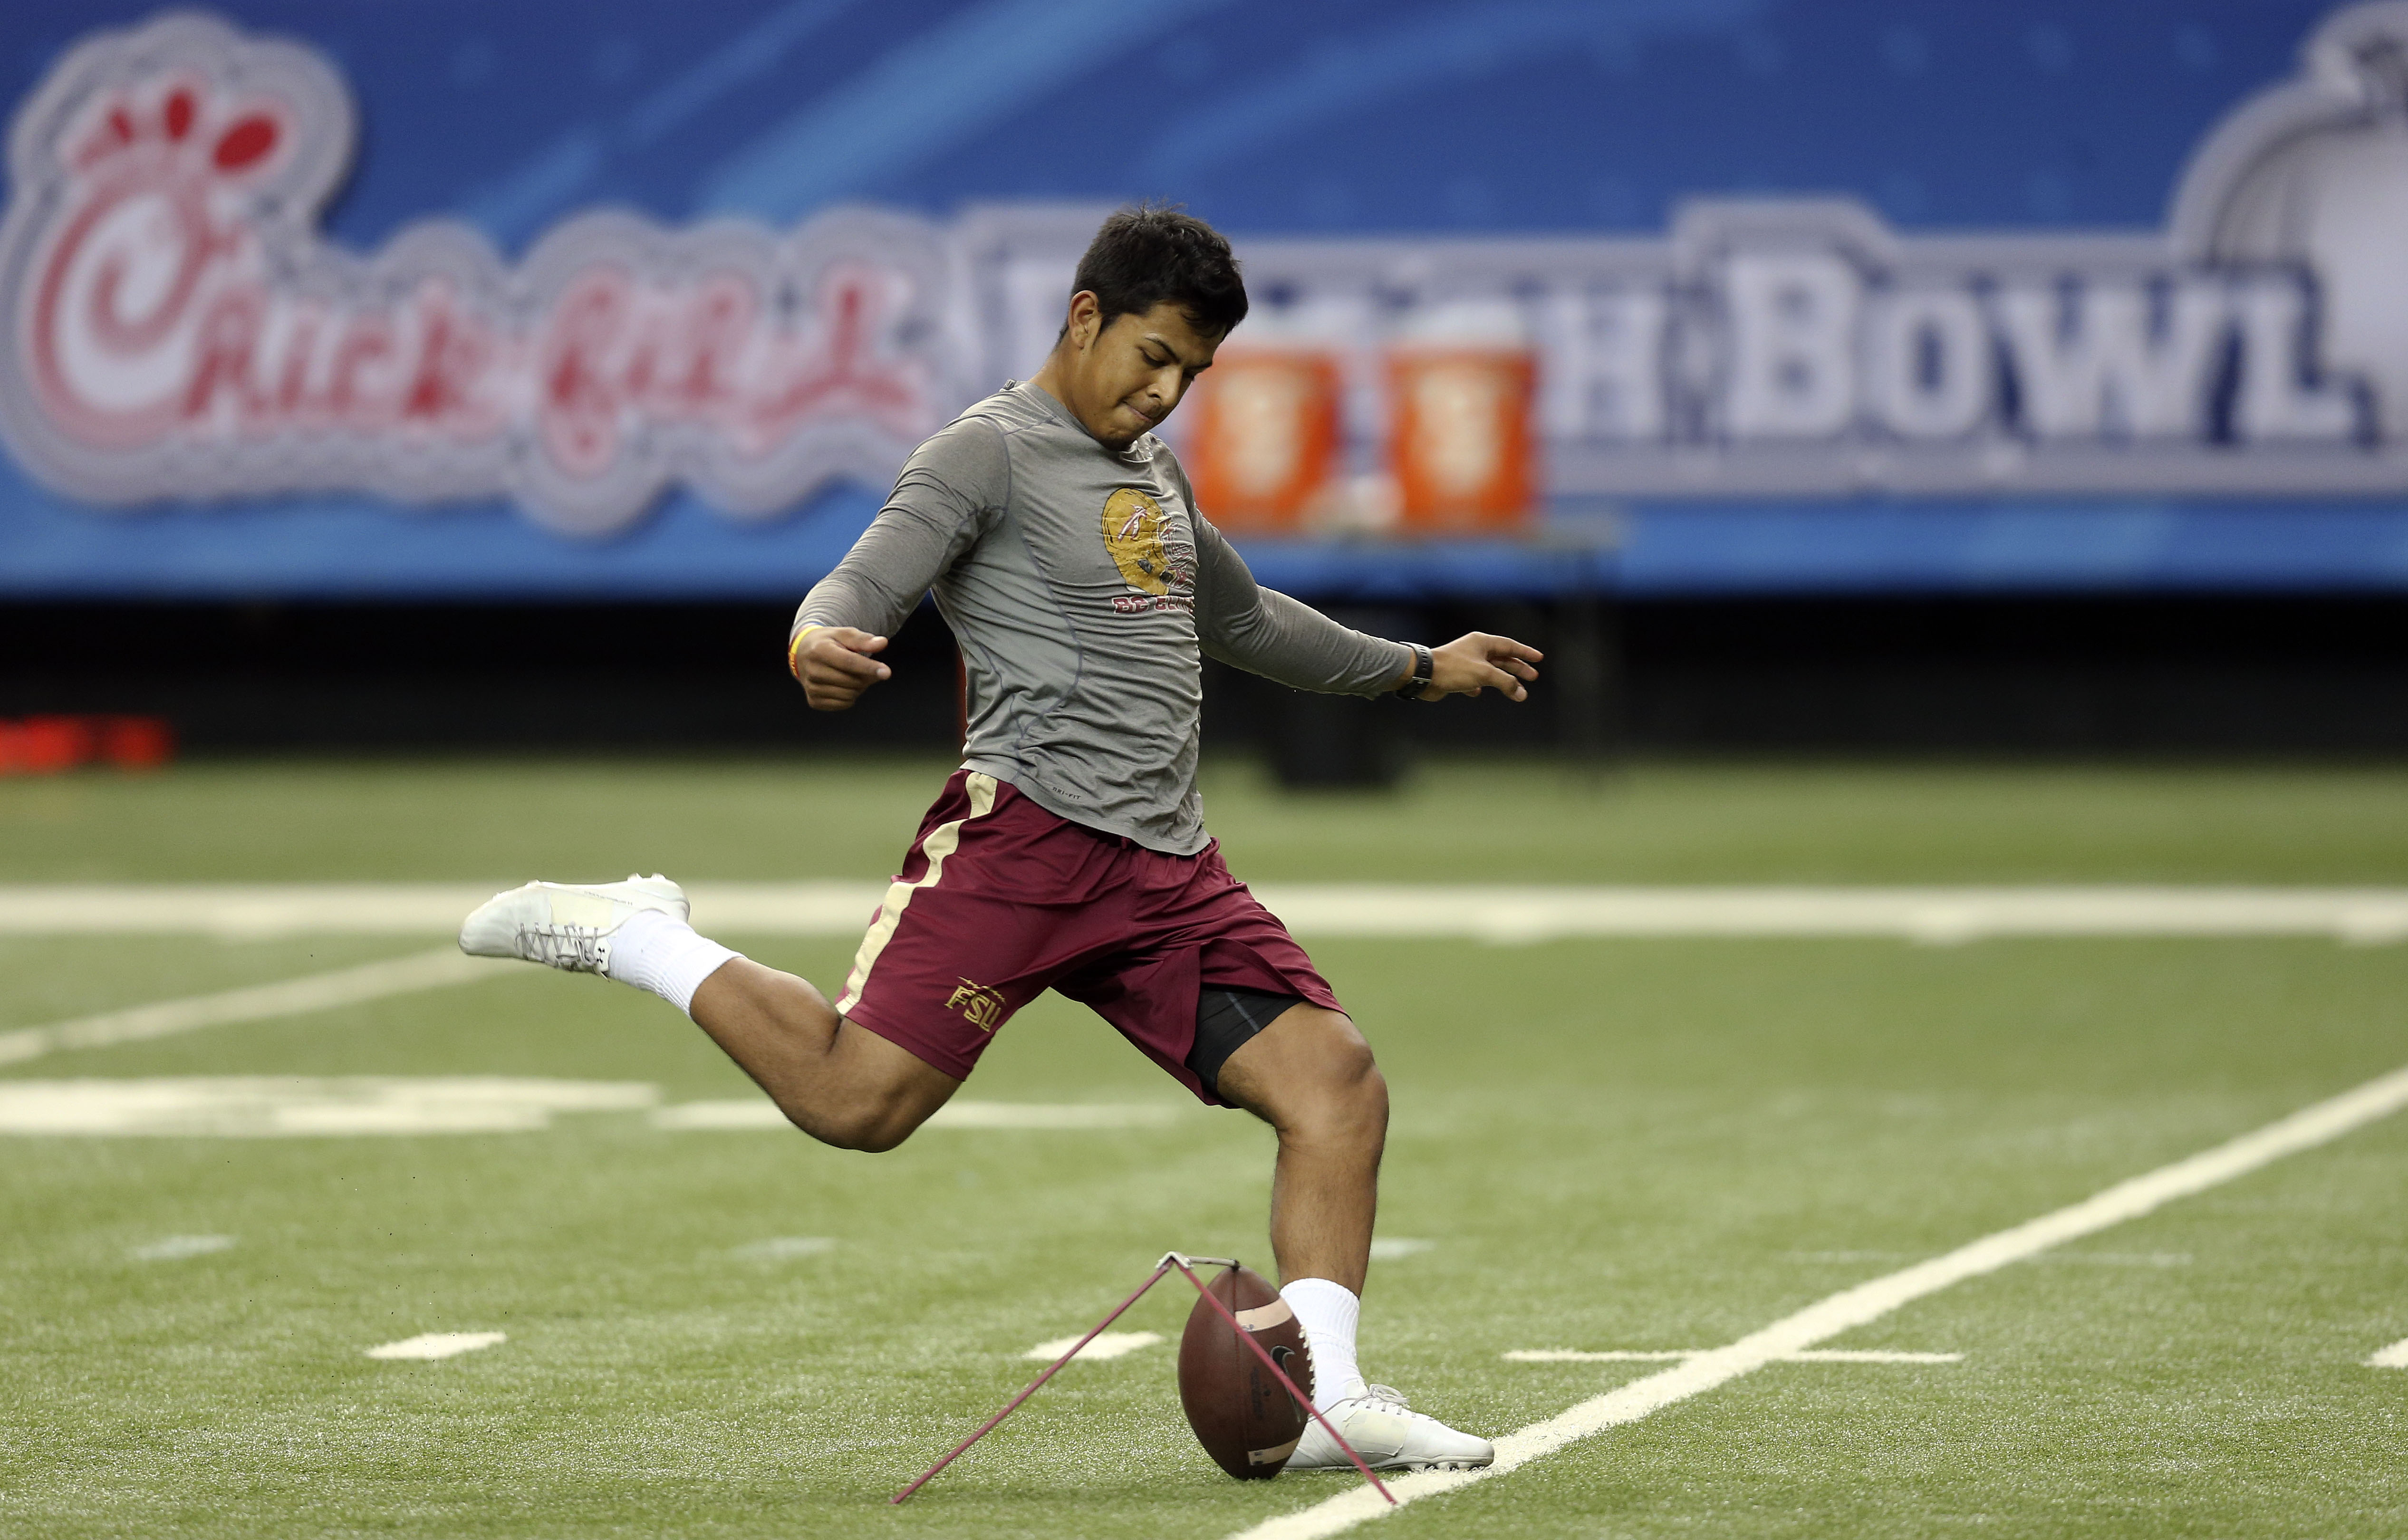 Florida State placekicker Roberto Aguayo (19) kicks during a practice for the Peach Bowl NCAA college football game at the Georgia Dome, Tuesday, Dec. 29, 2015, in Atlanta. Florida State will face Houston on New Year's Eve. (AP Photo/John Bazemore)